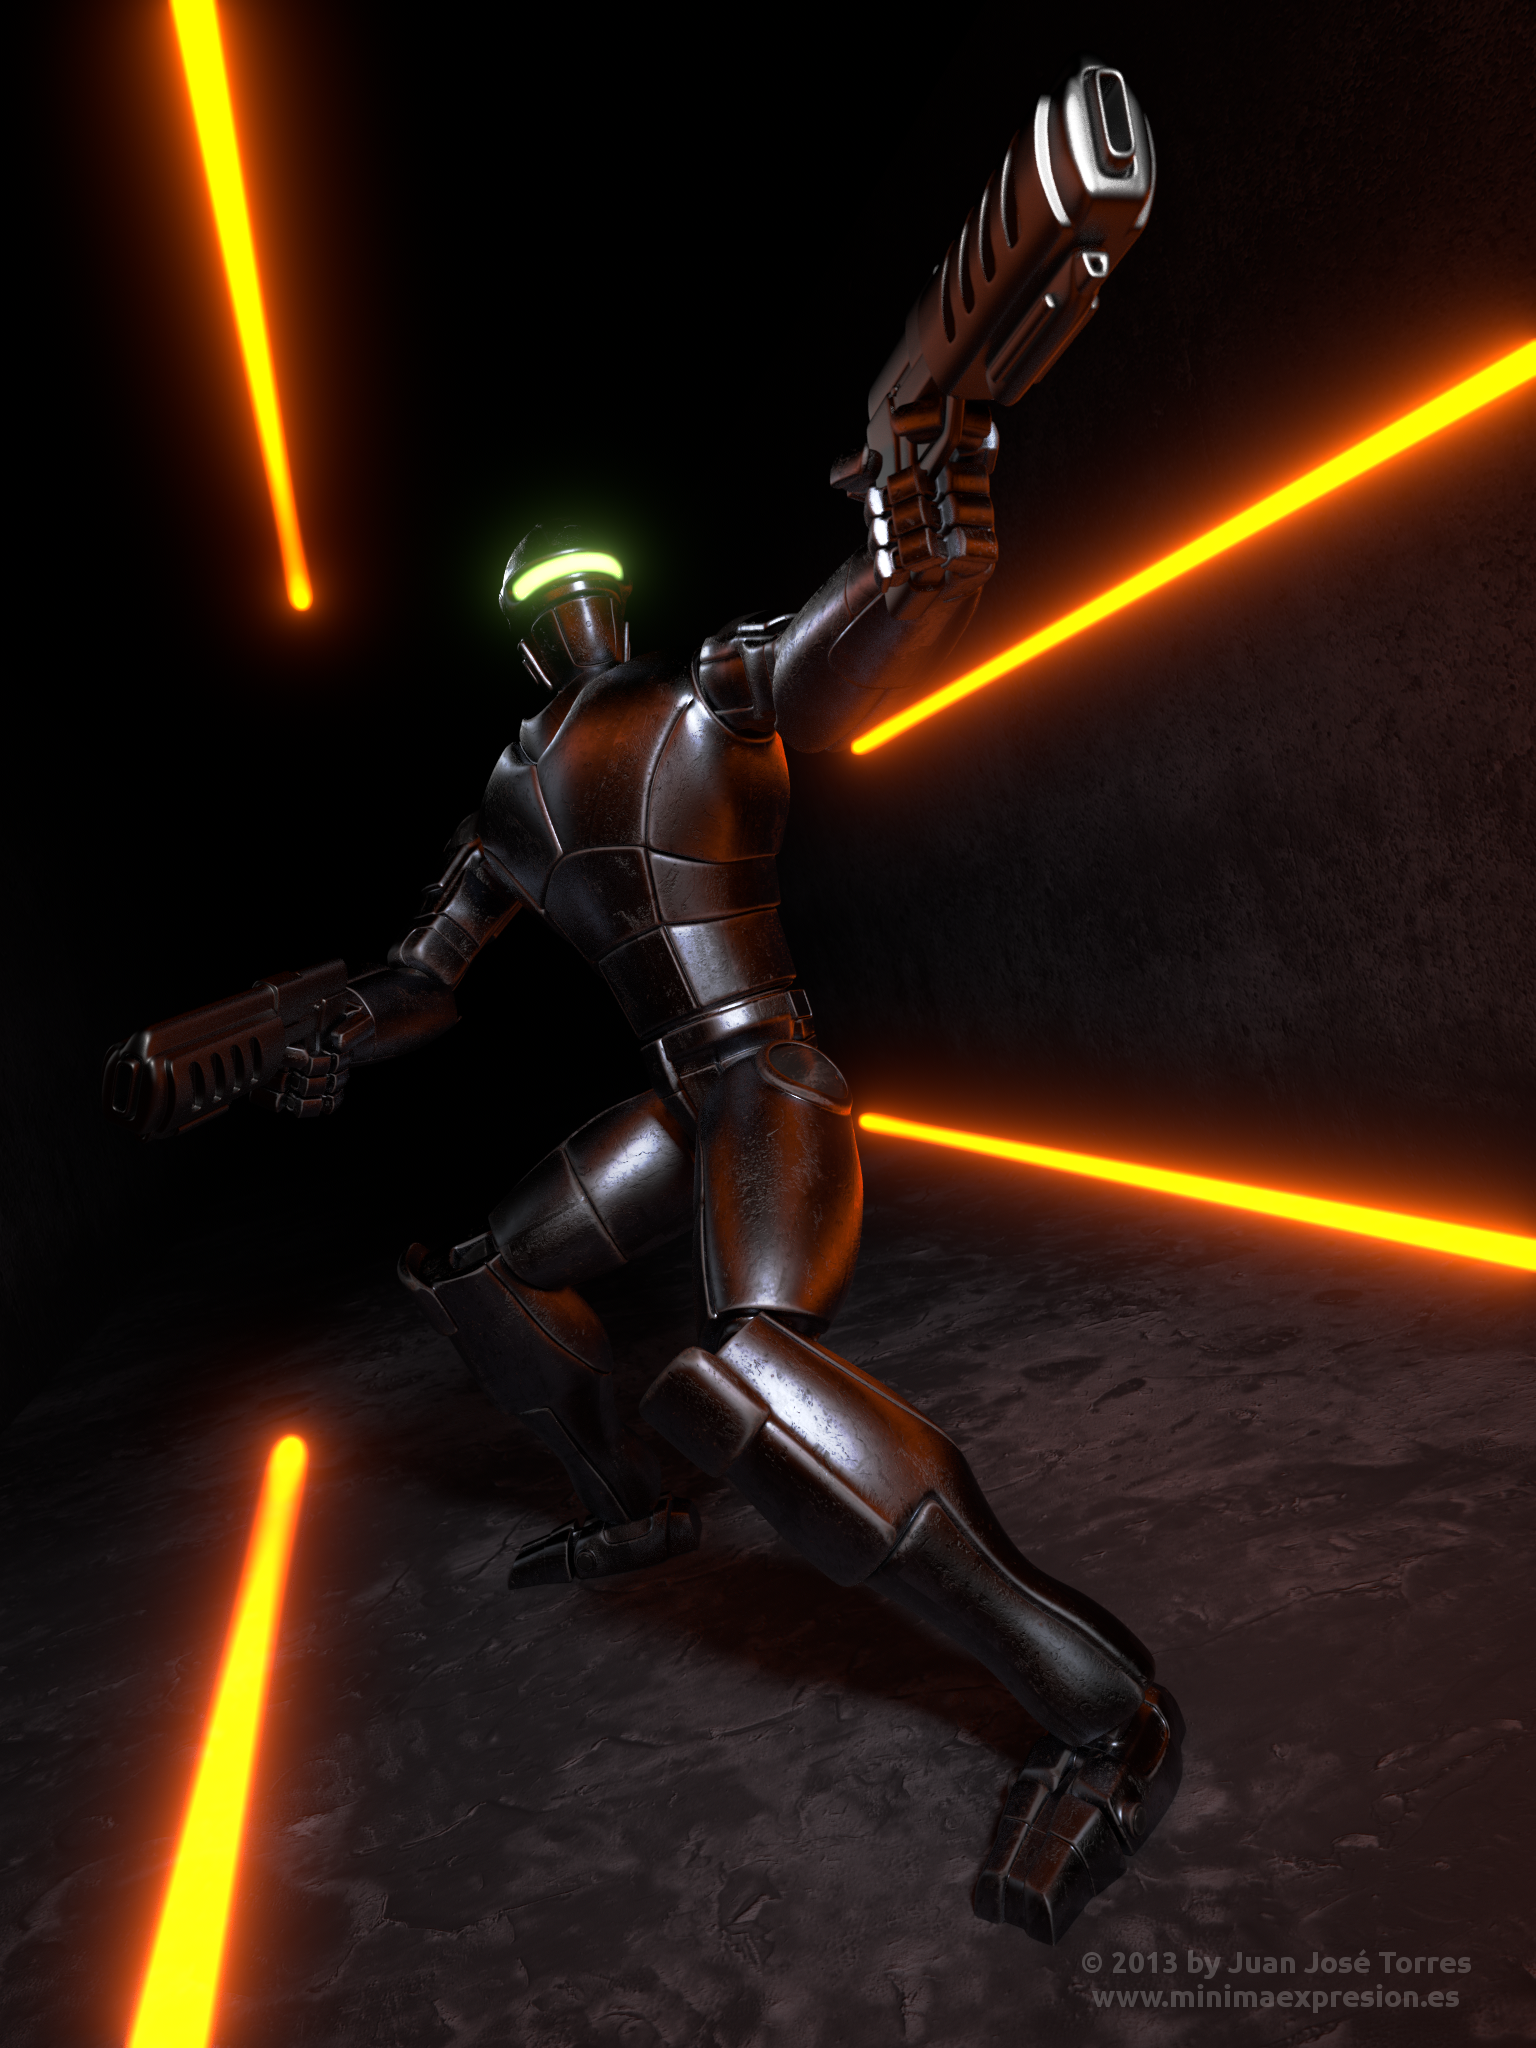 New Robot Design - Posing Test by JuanJoseTorres